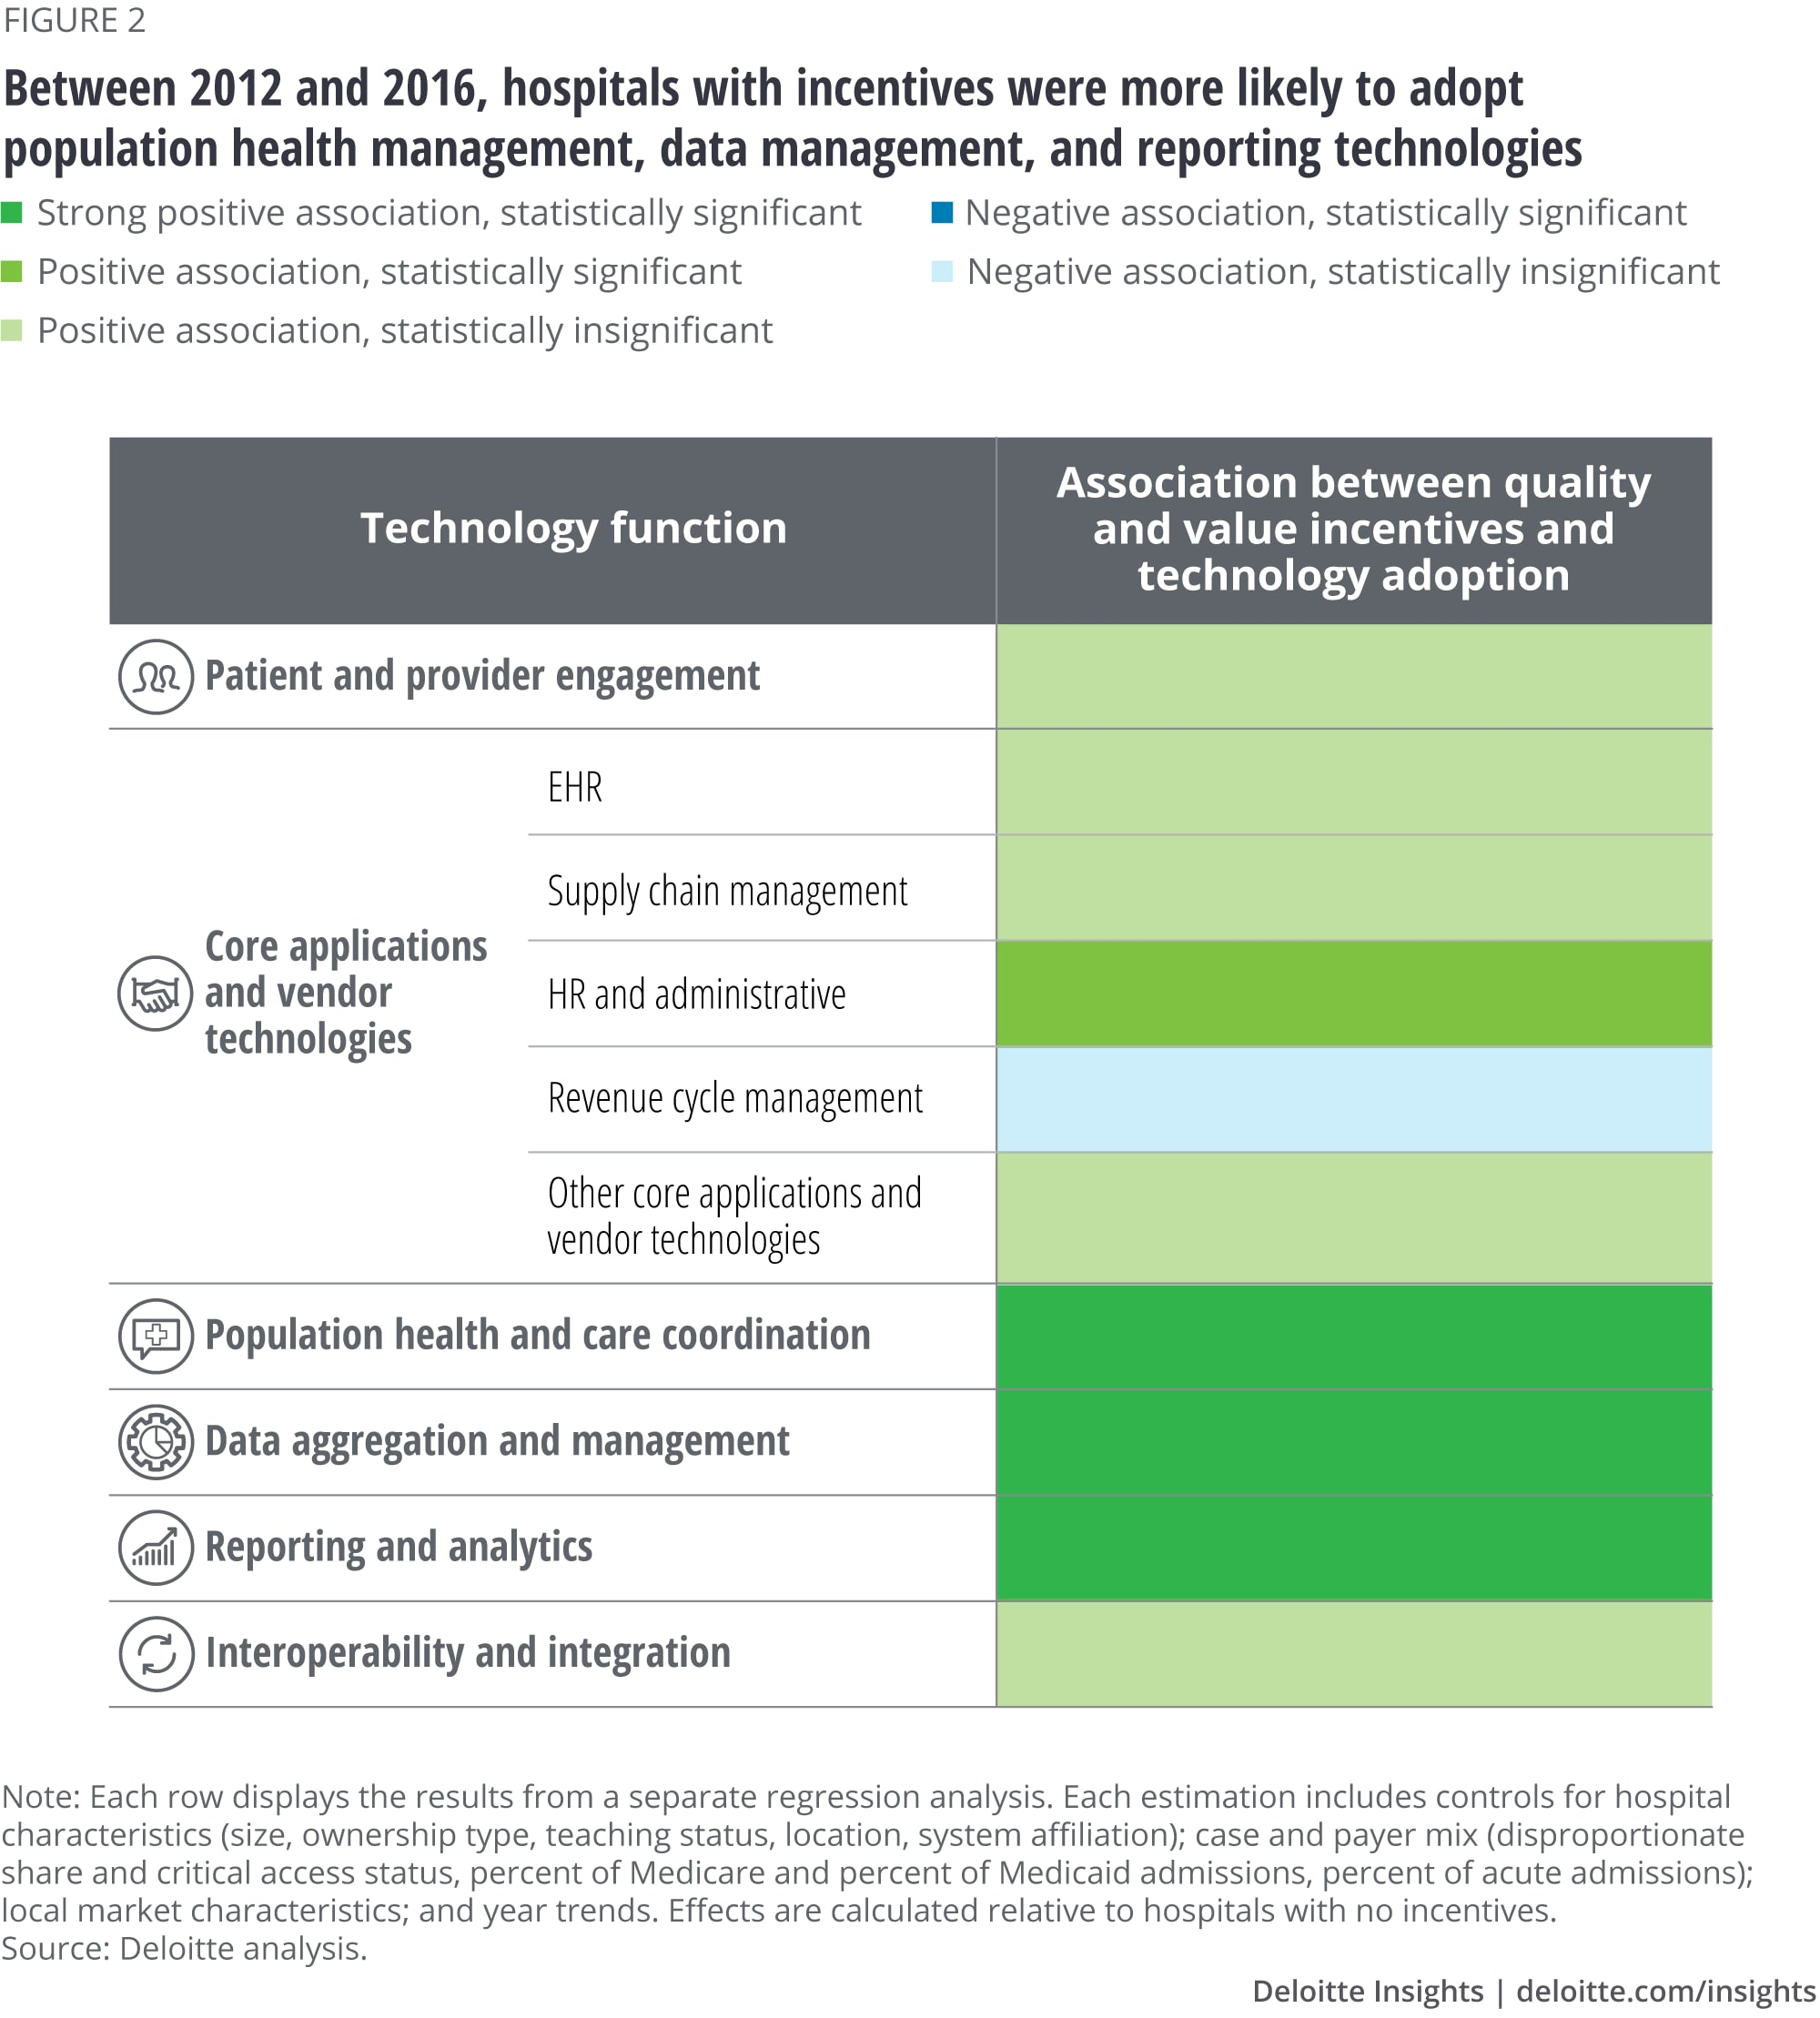 Between 2012 and 2016, hospitals with incentives were more likely to adopt population health management, data management, and reporting technologies